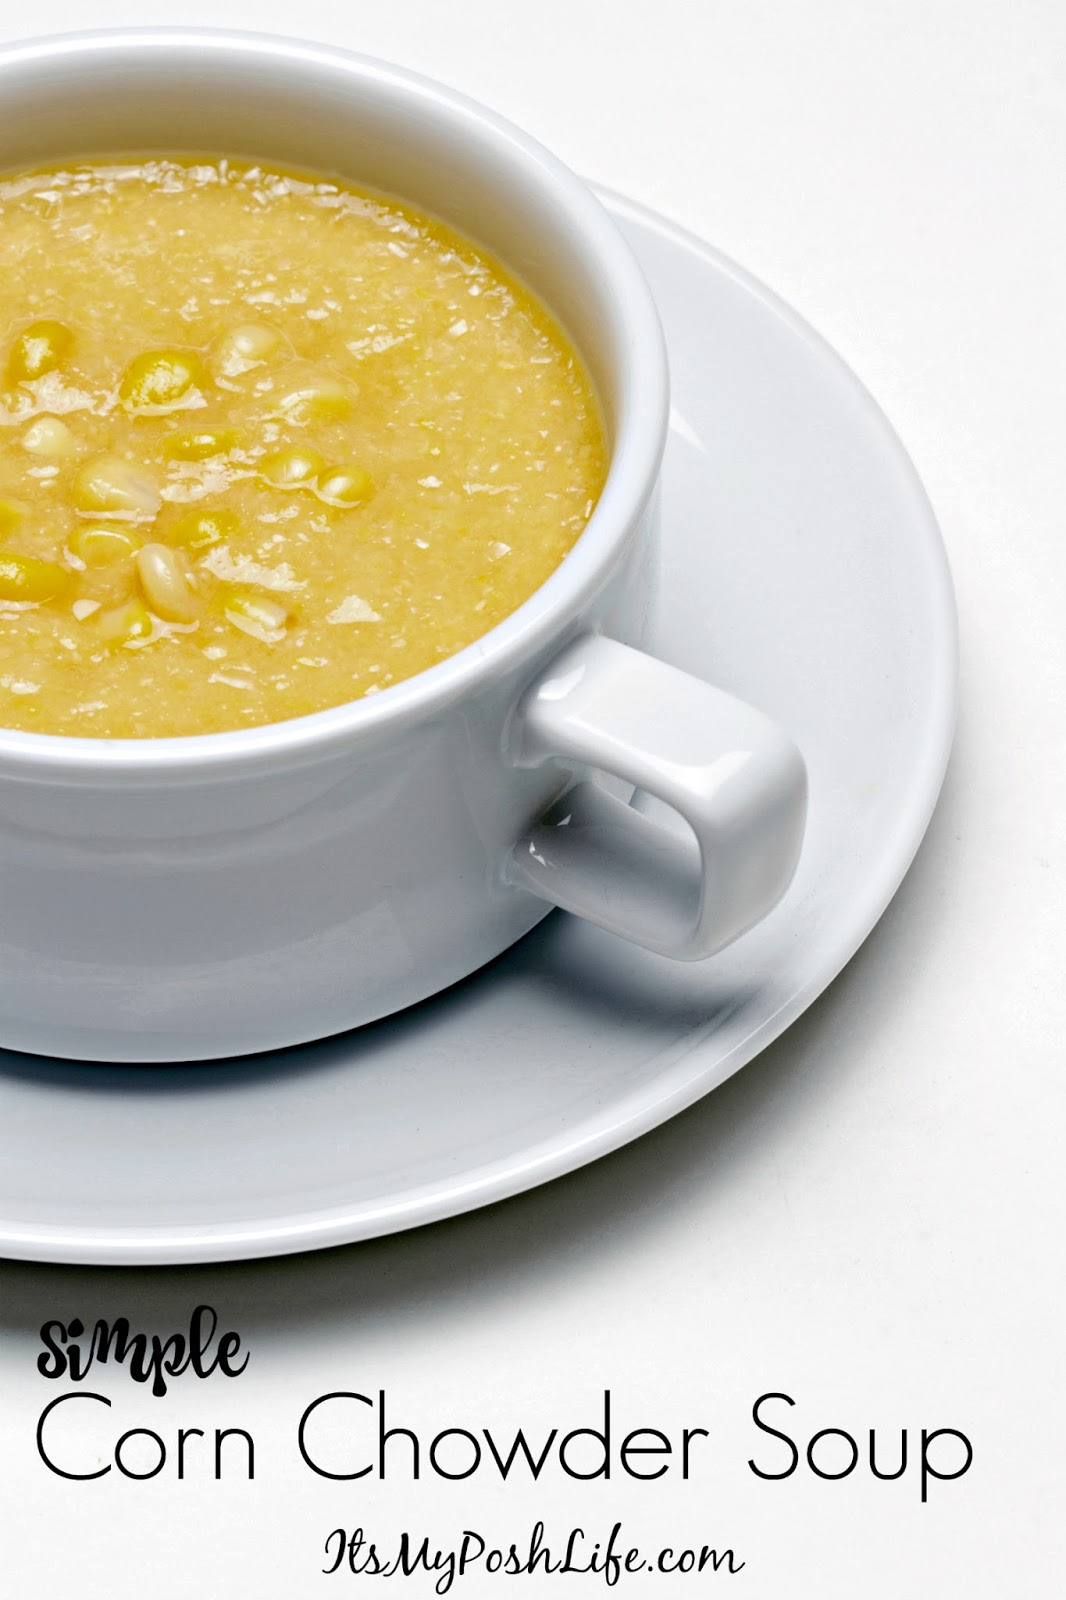 Simple Corn Chowder Soup